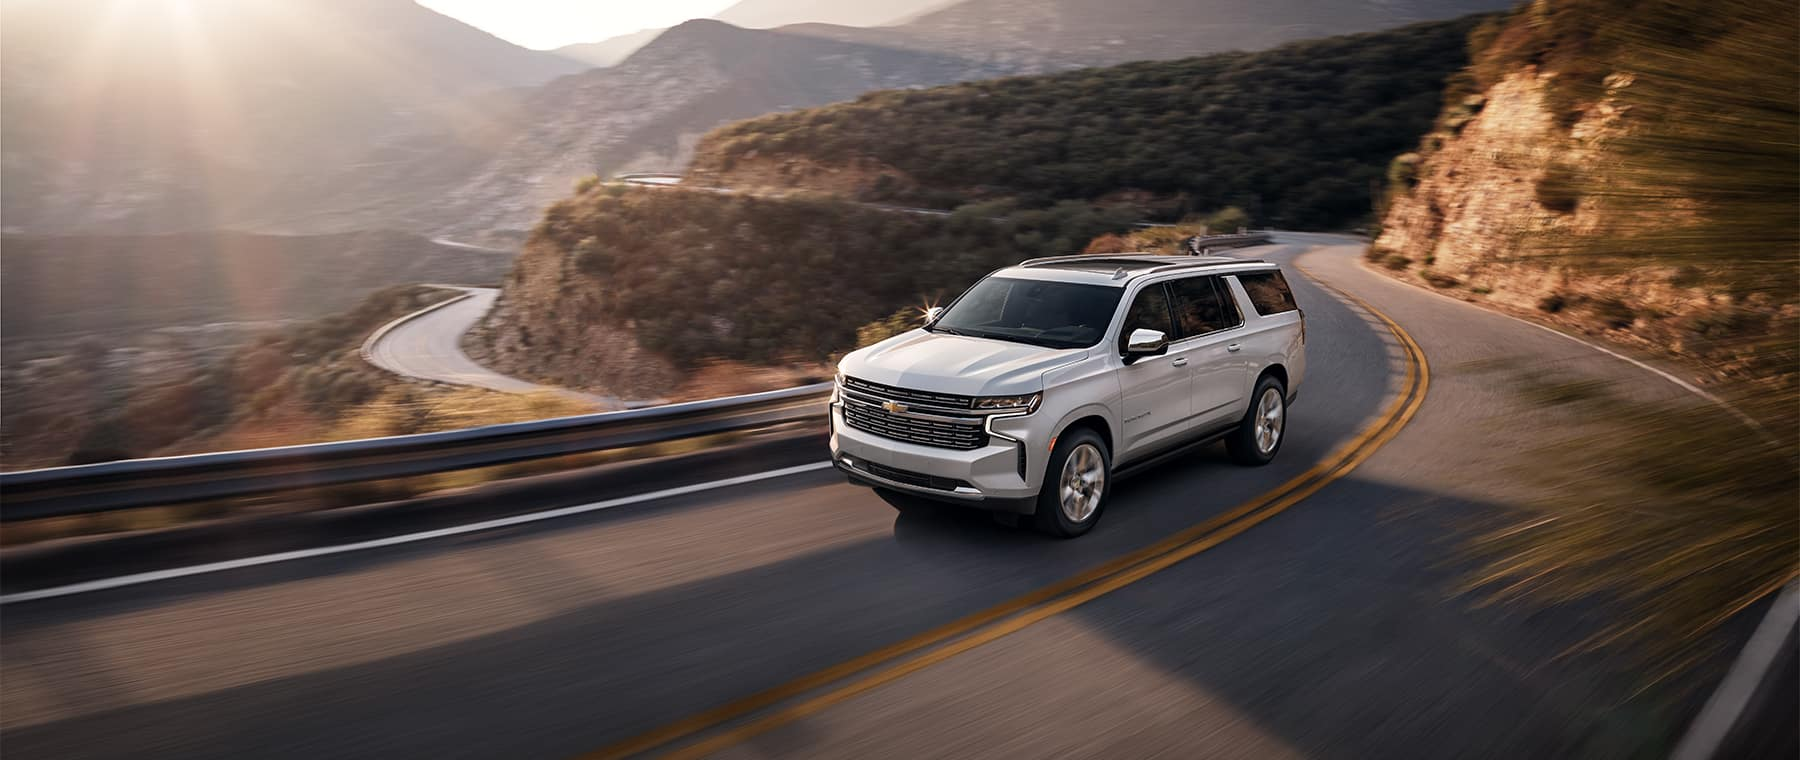 2021 Chevrolet Suburban driving on road